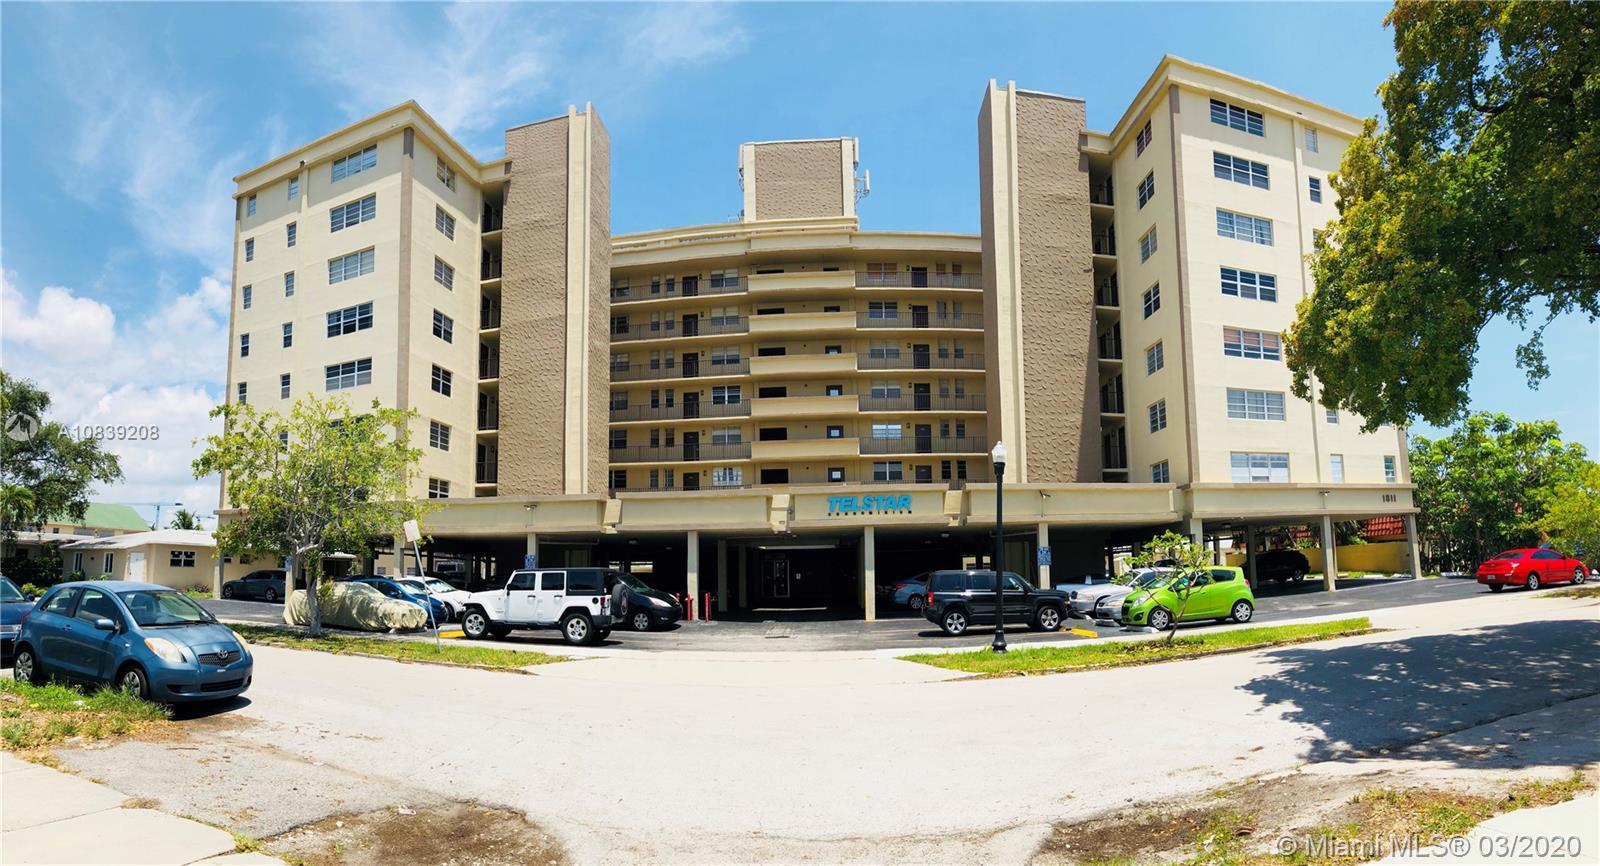 1811 Jefferson St # 206, Hollywood, Florida 33020, 1 Bedroom Bedrooms, ,2 BathroomsBathrooms,Residential,For Sale,1811 Jefferson St # 206,A10839208